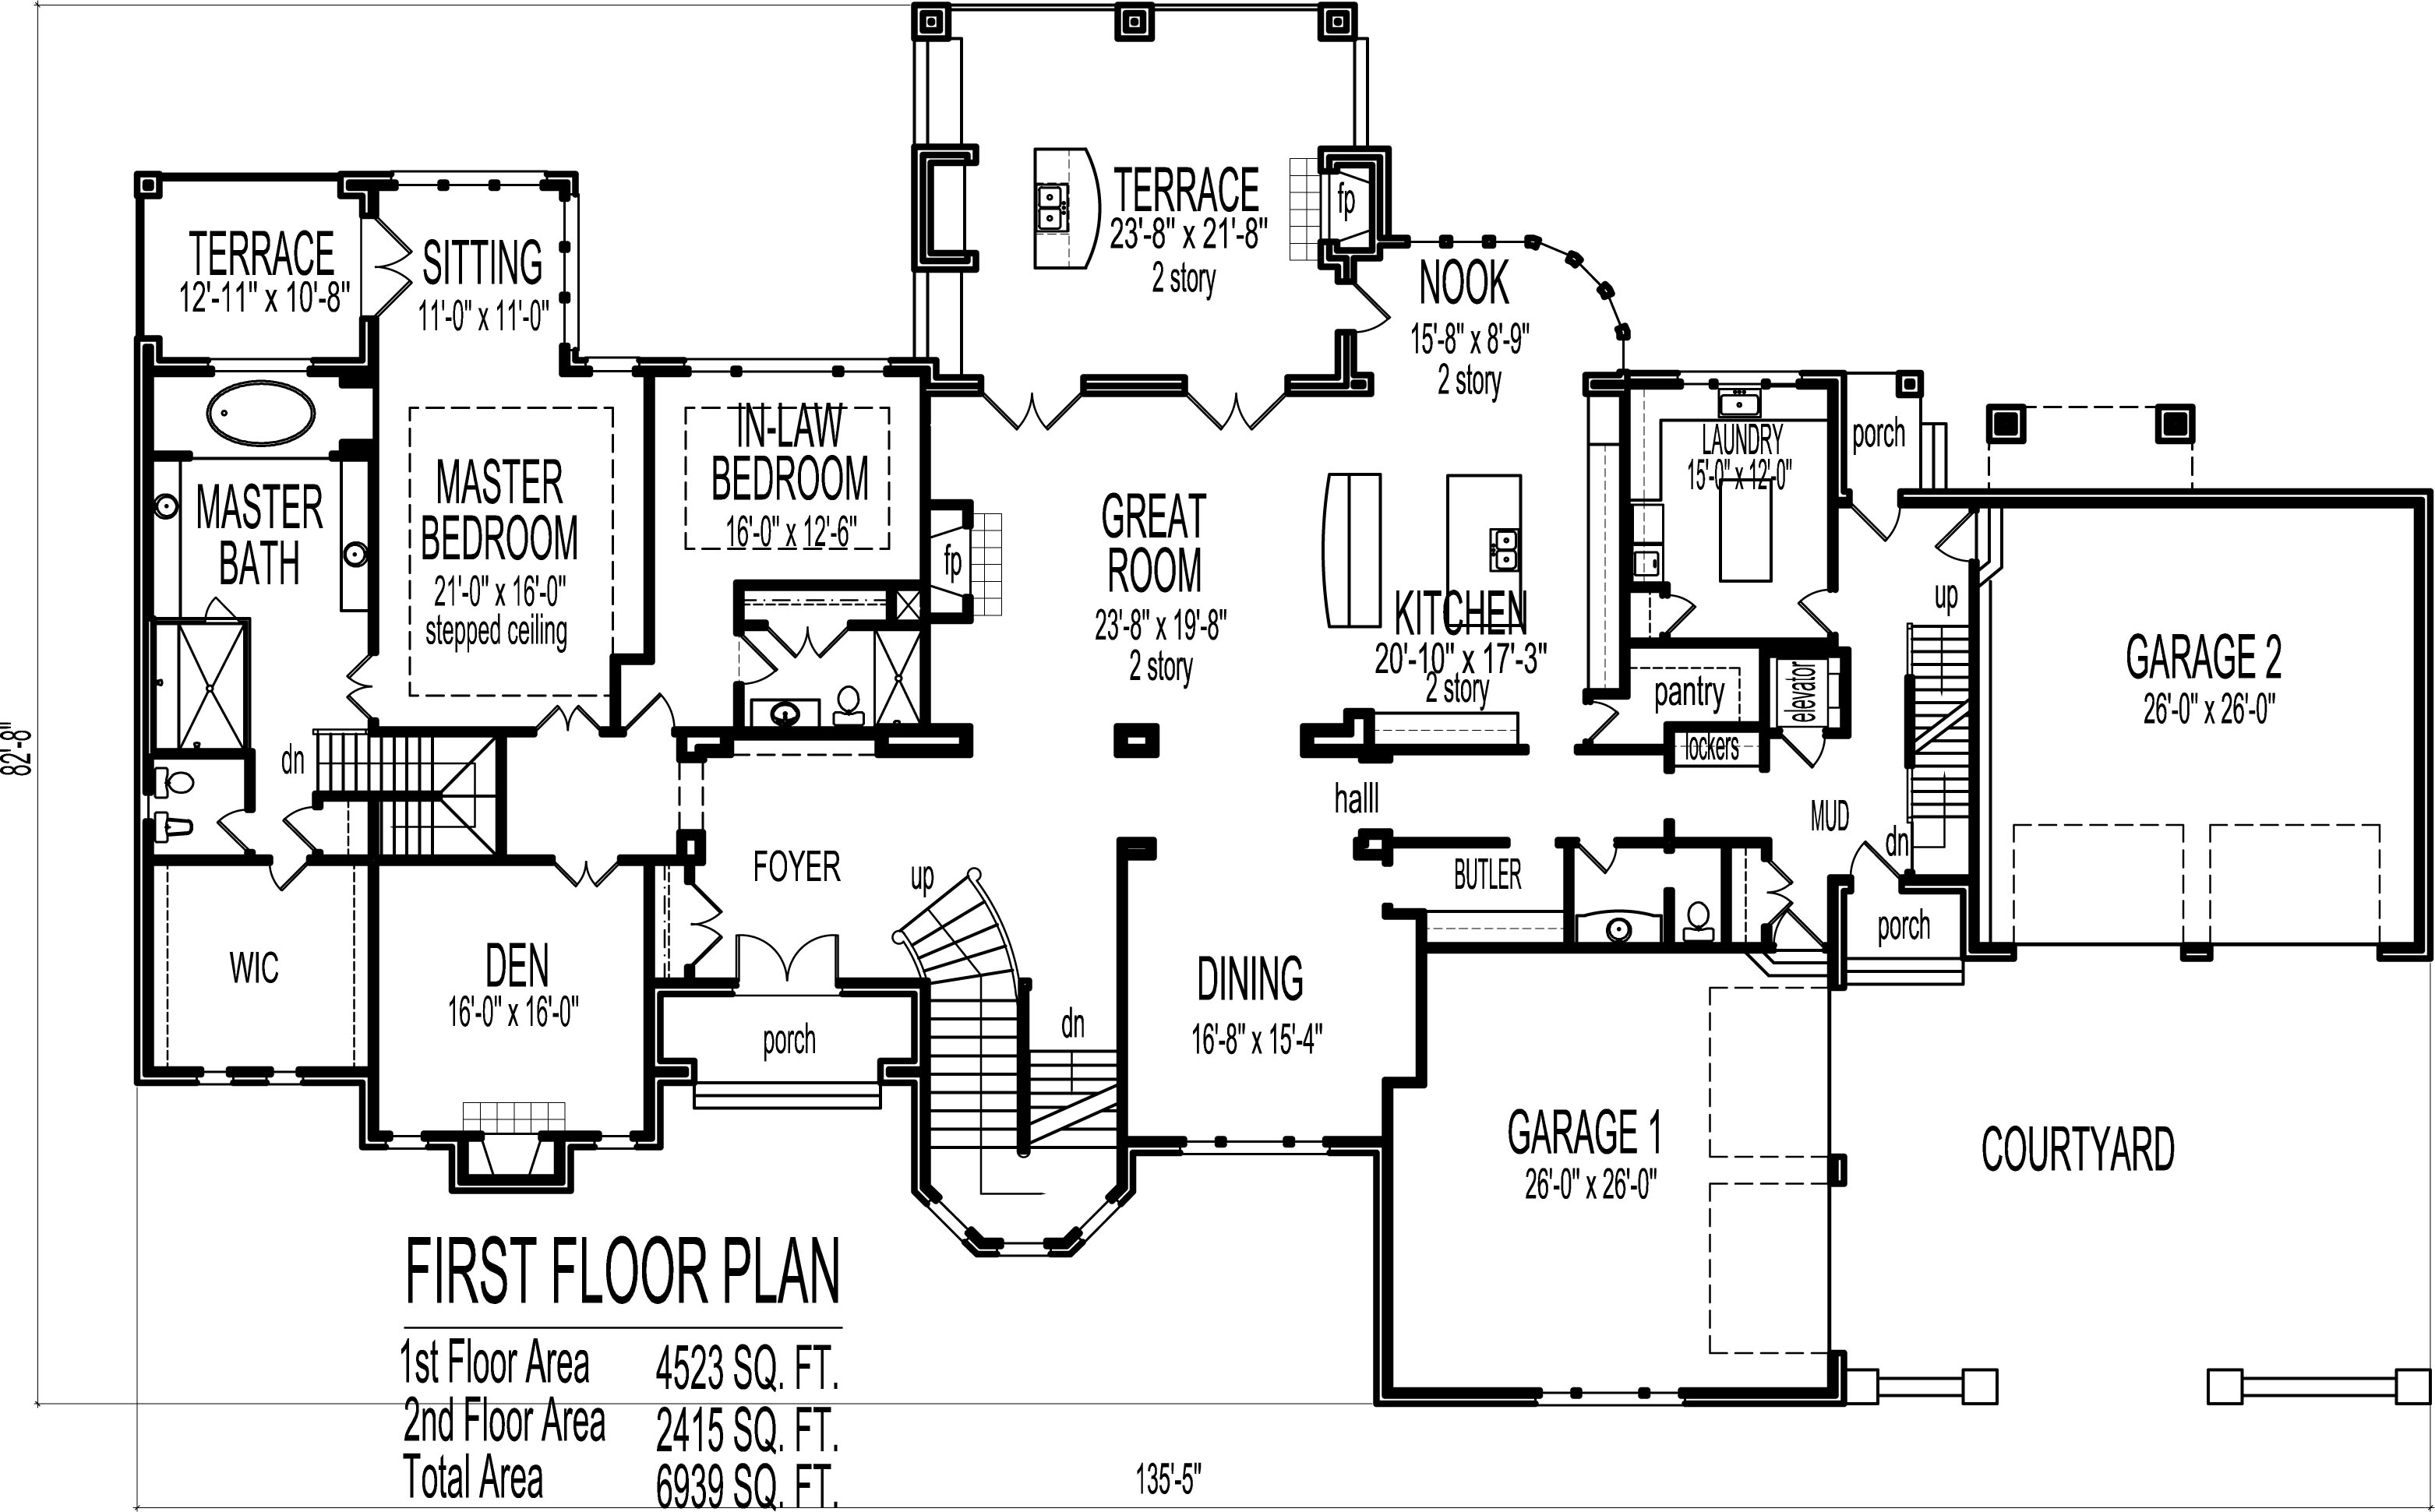 Dream house floor plans blueprints 2 story 5 bedroom large for 5 br house plans